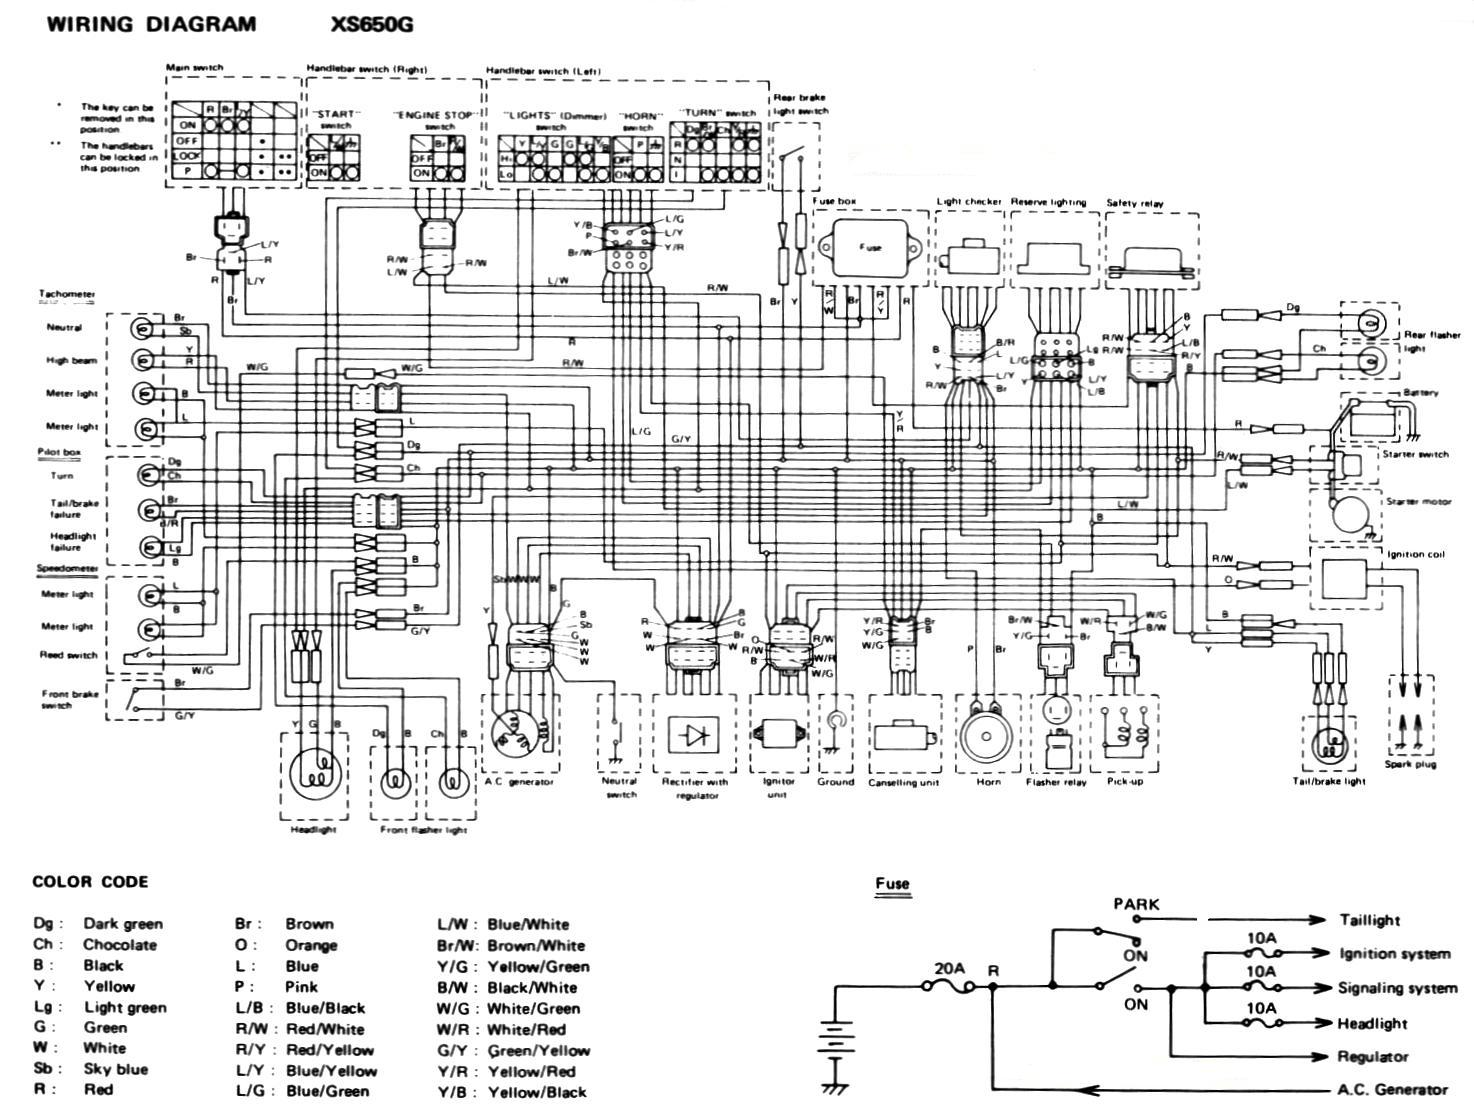 1982 Xj550 Wiring Diagram - wiring diagrams schematics